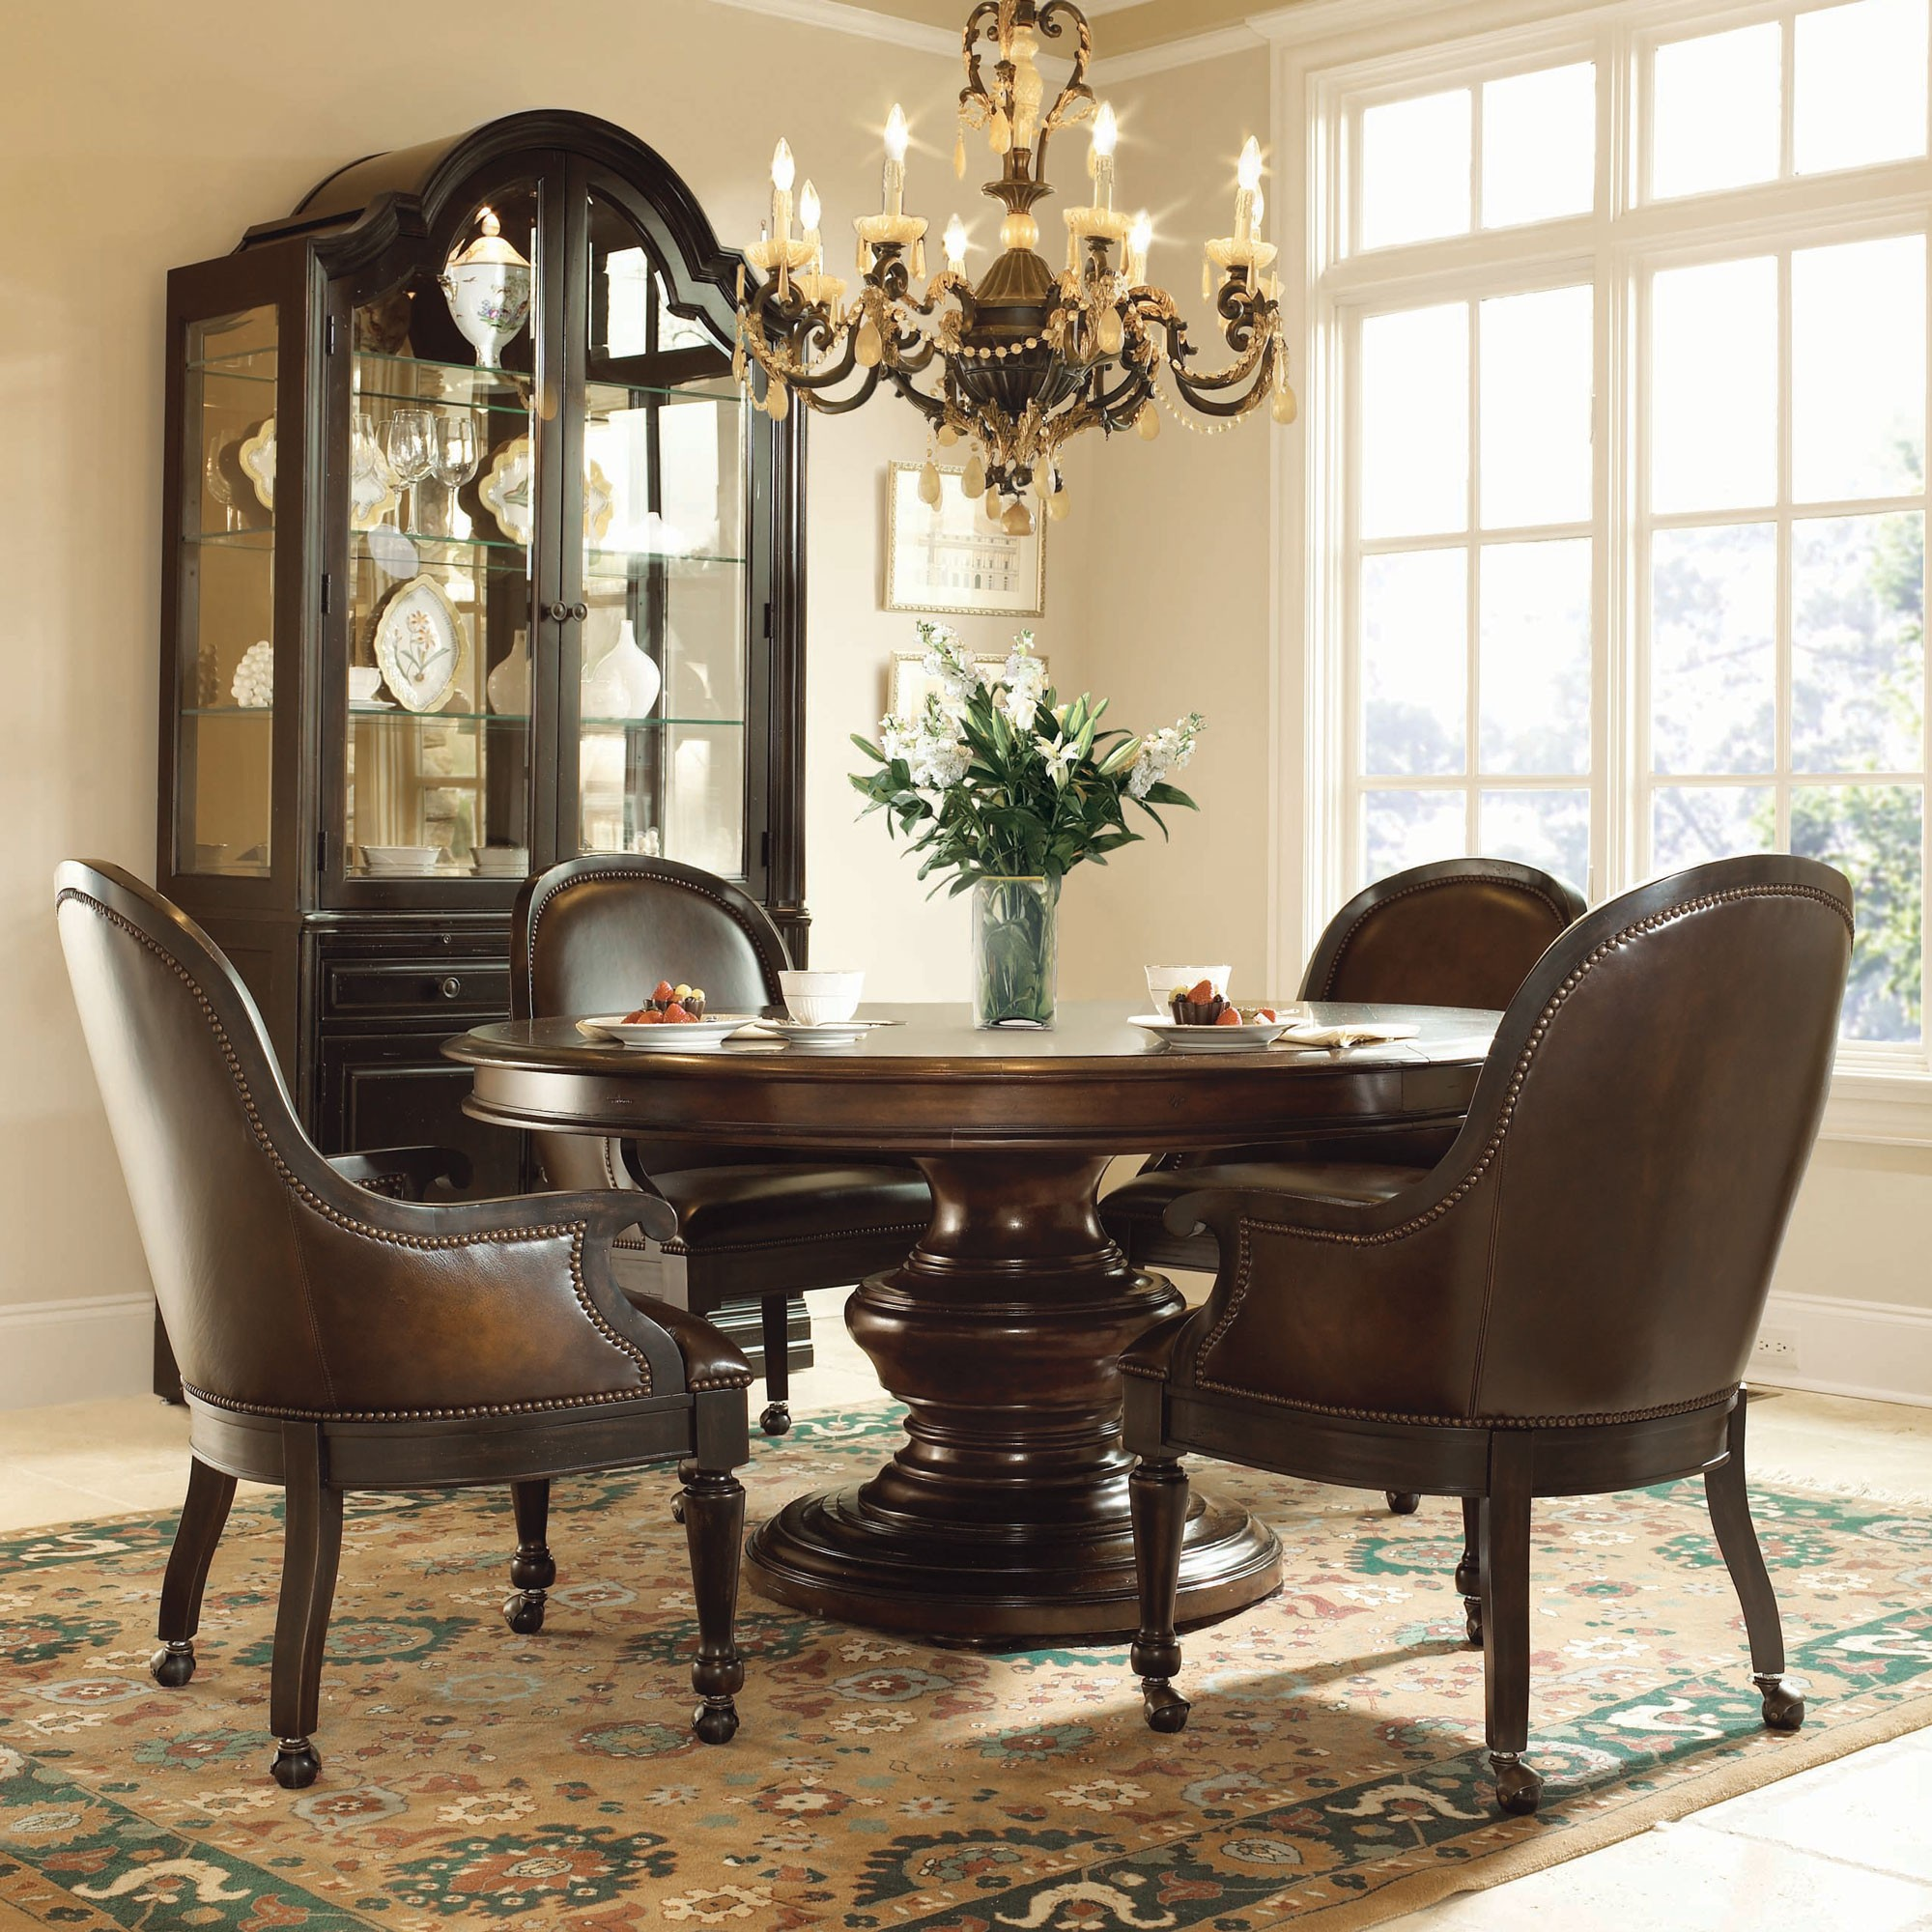 Ordinaire Hillsdale Grand Bay 5 Piece Round Dining Room Chairs With